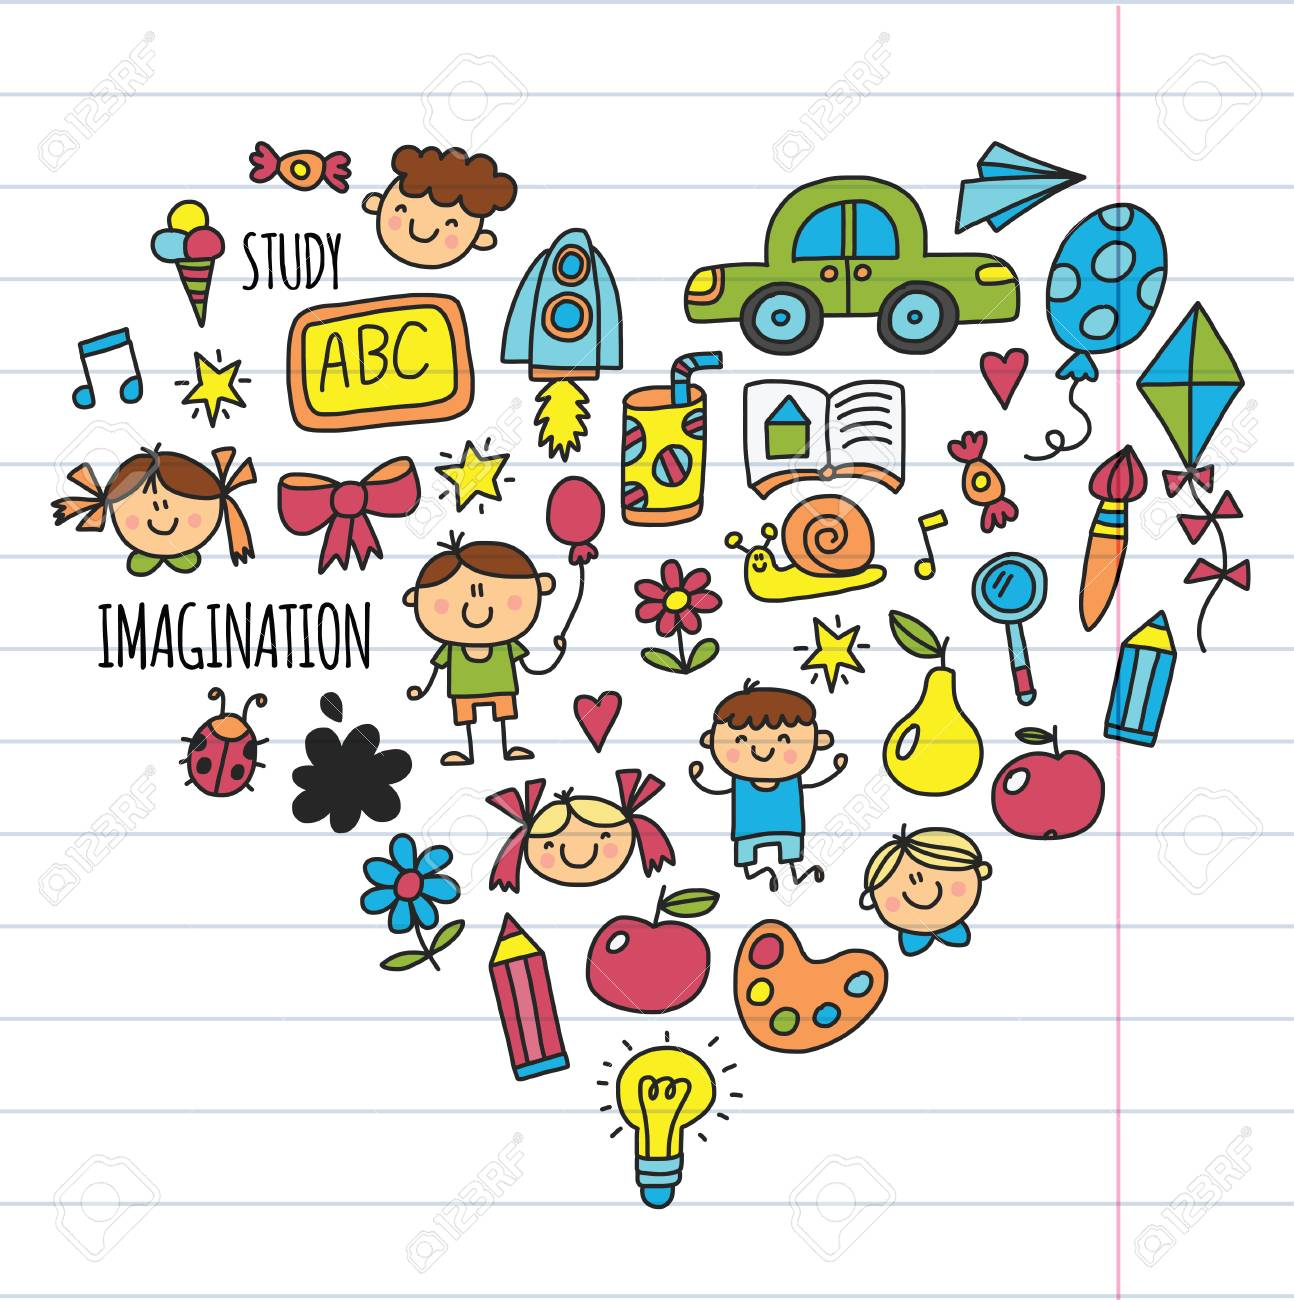 School Education Children Play And Grow Kids Drawing Icons Royalty Free Cliparts Vectors And Stock Illustration Image 89287188